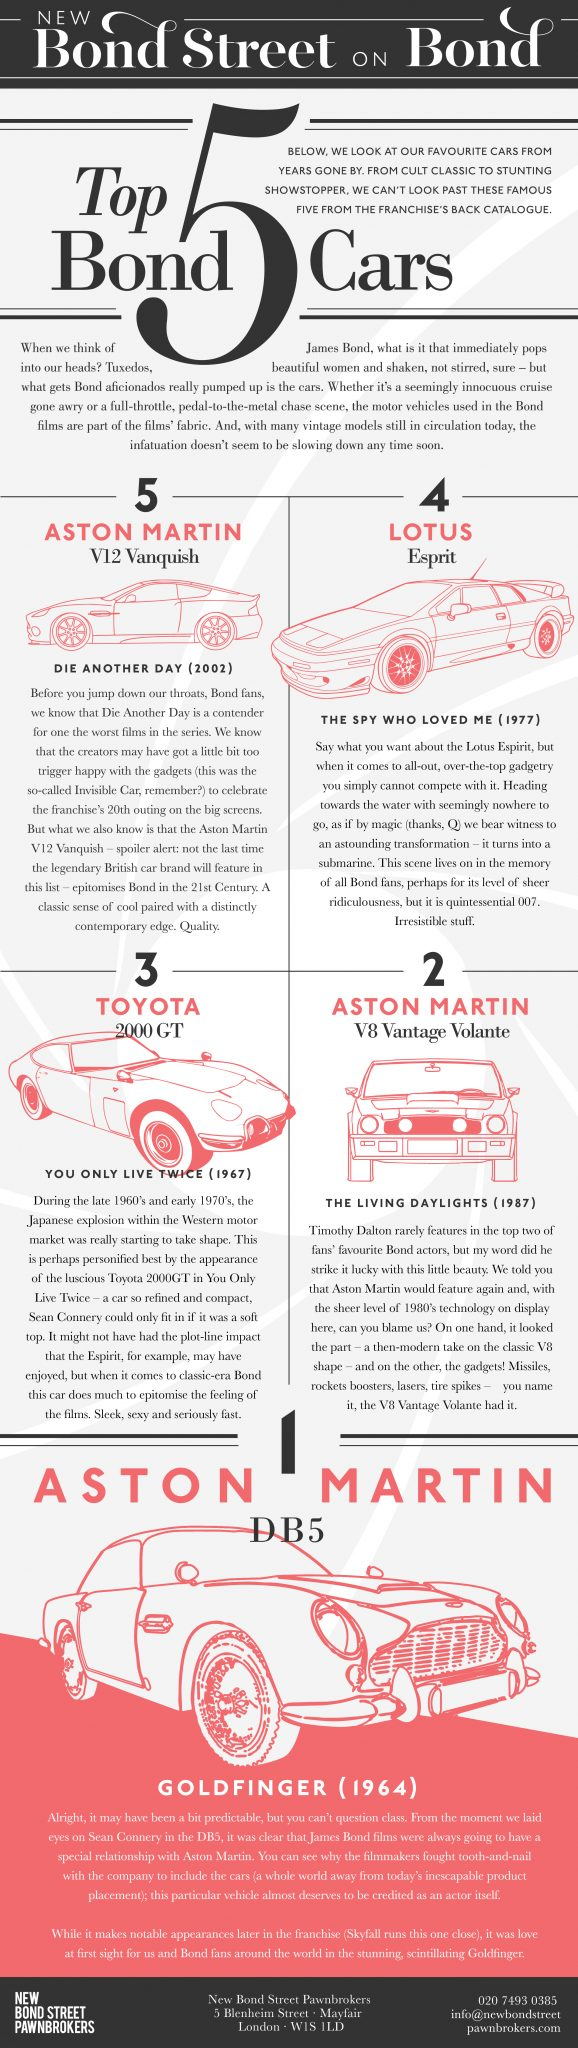 Top 5 James Bond 007 Cars - Infographic